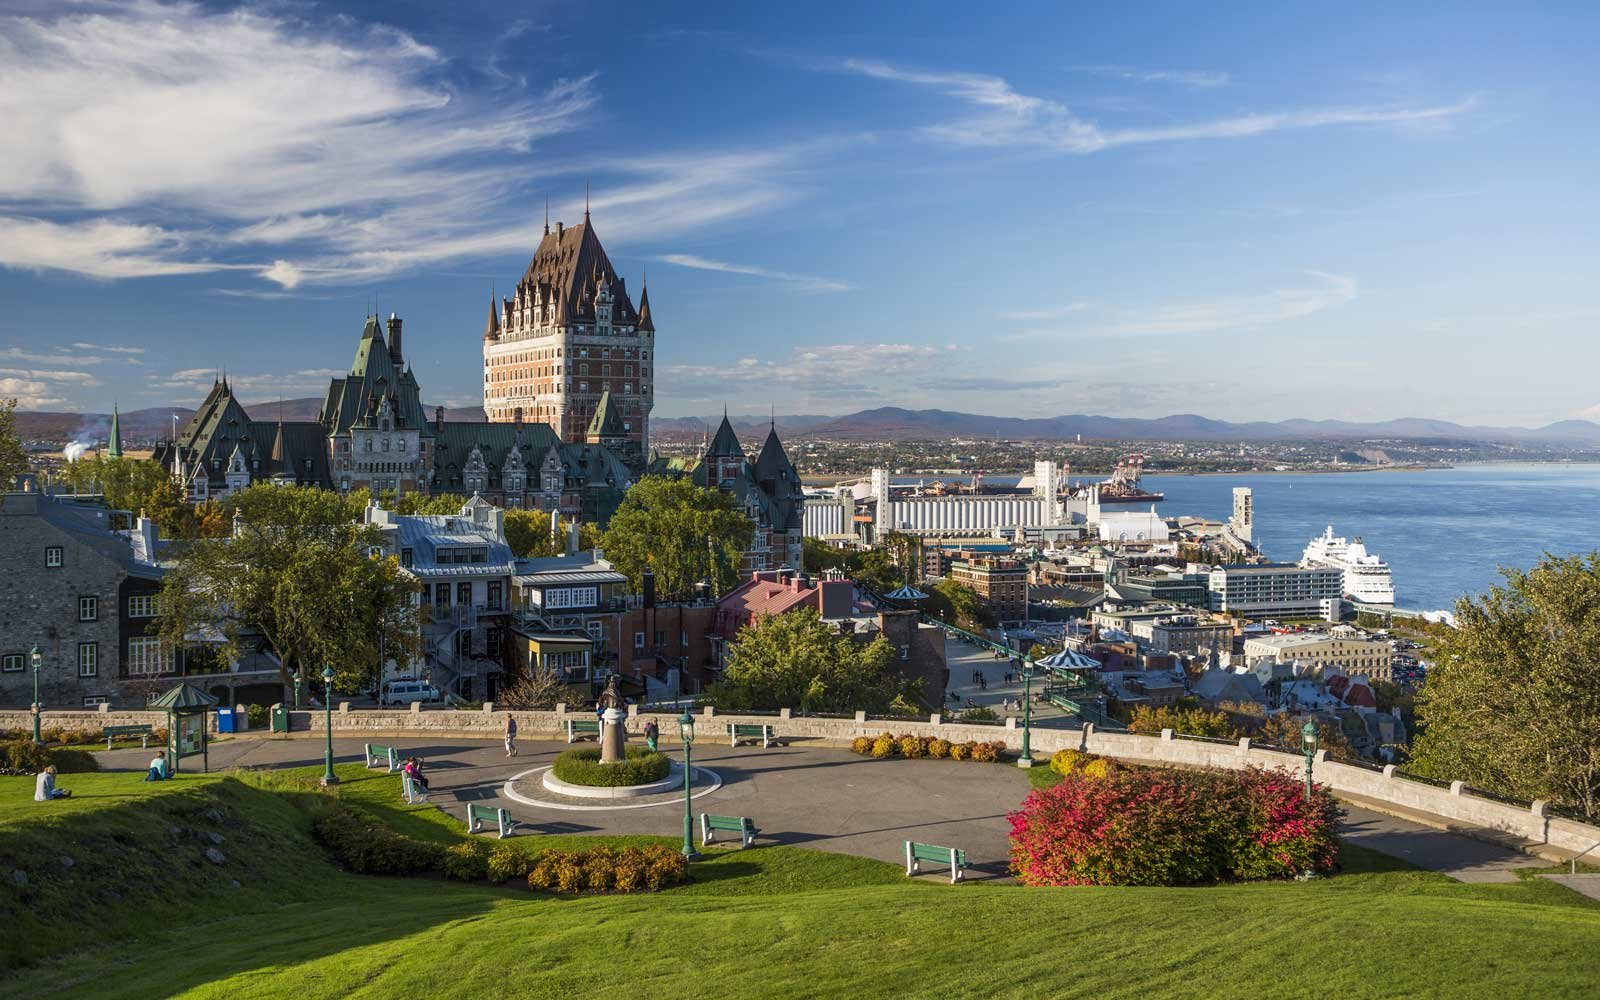 Canada, Quebec, View of Chateau Frontenac castle.